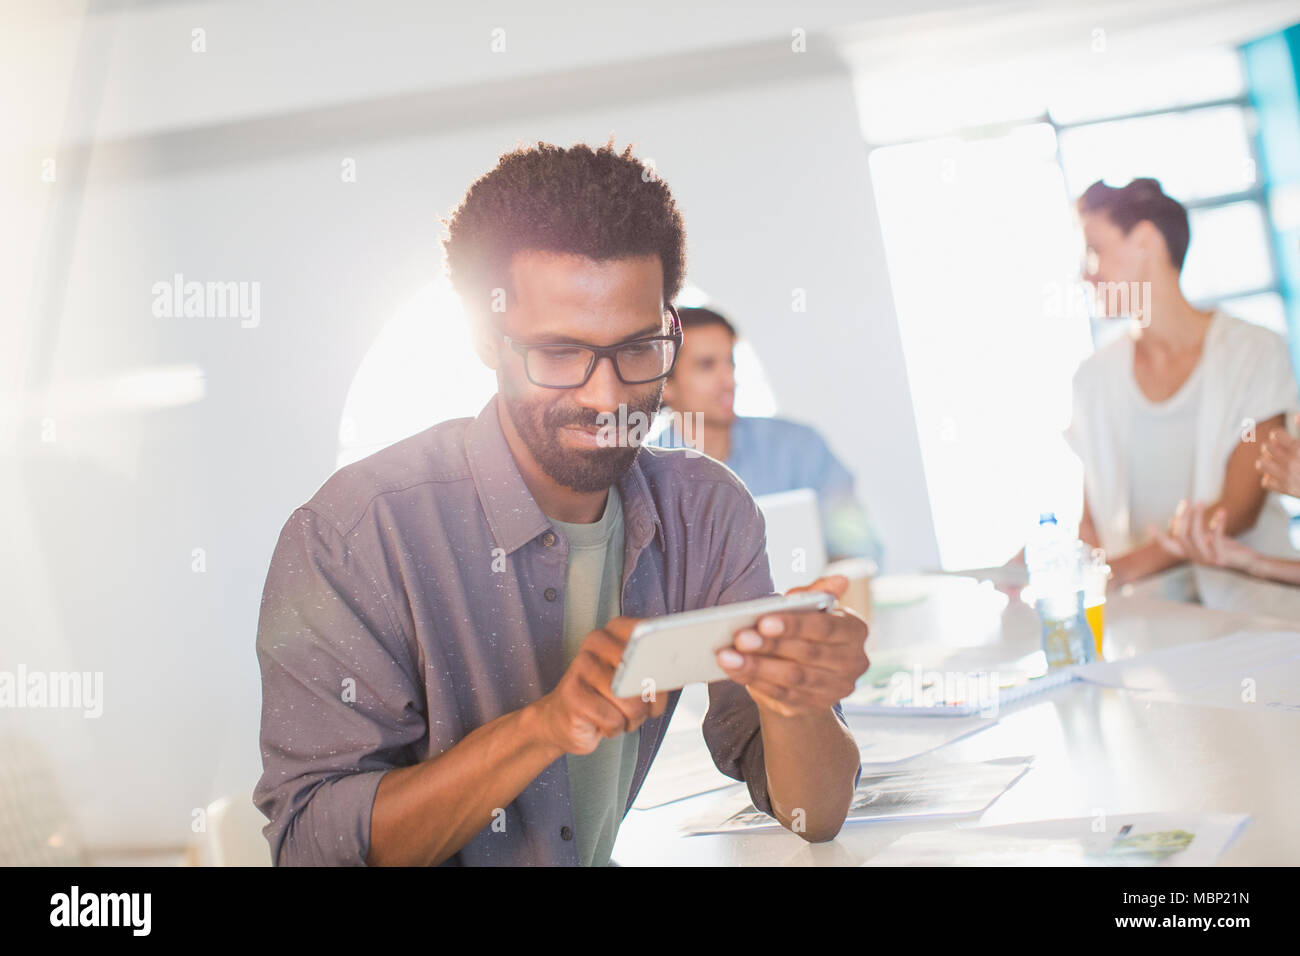 Creative businessman using smart phone in conference room meeting - Stock Image